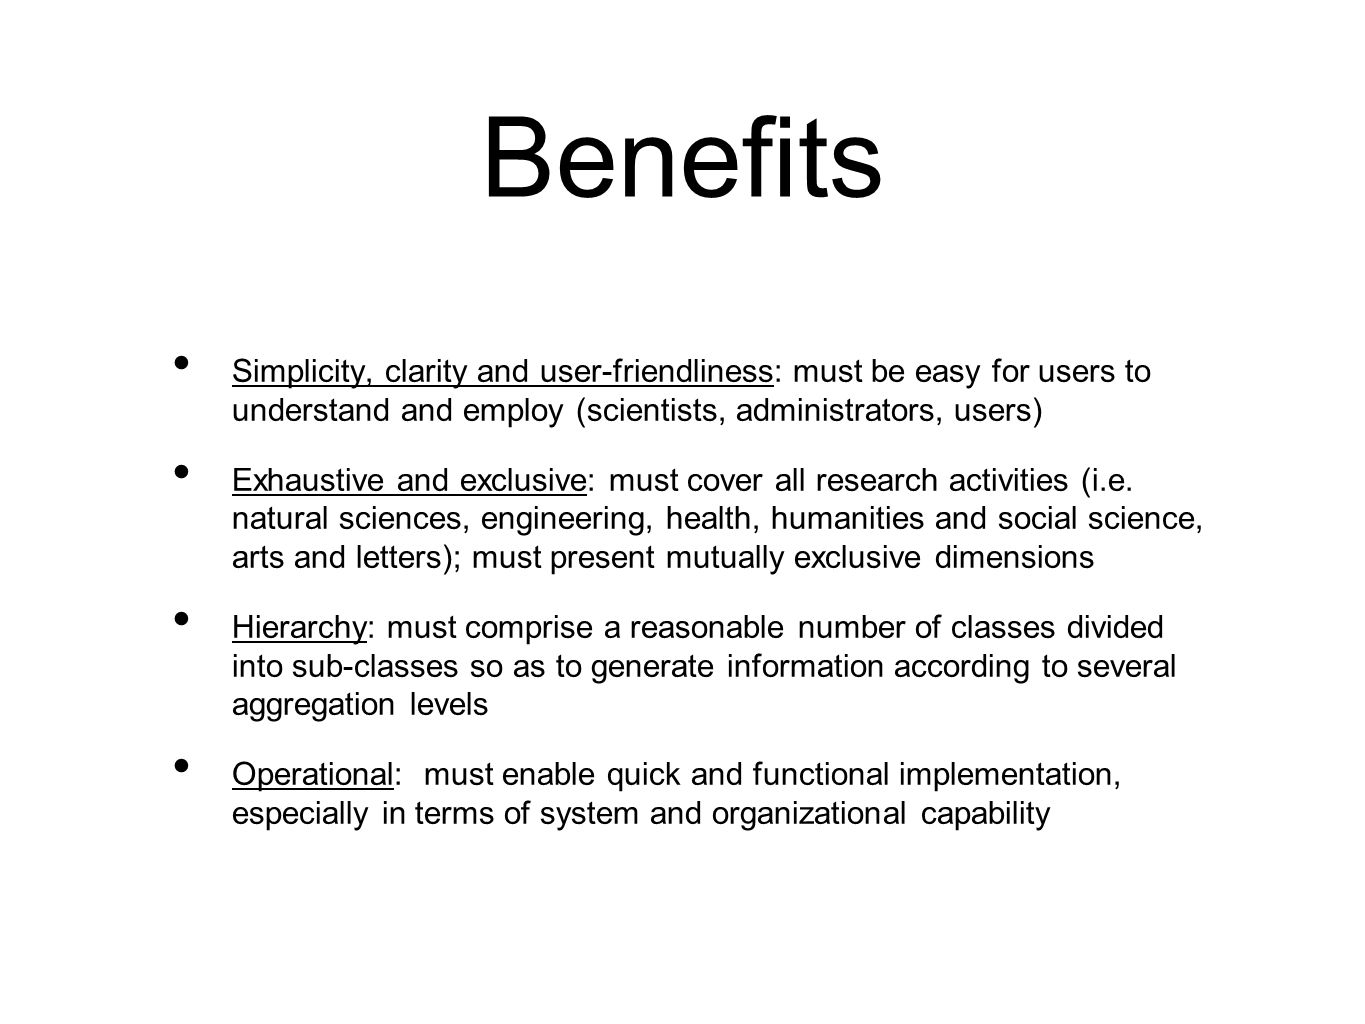 Benefits Simplicity, clarity and user-friendliness: must be easy for users to understand and employ (scientists, administrators, users)